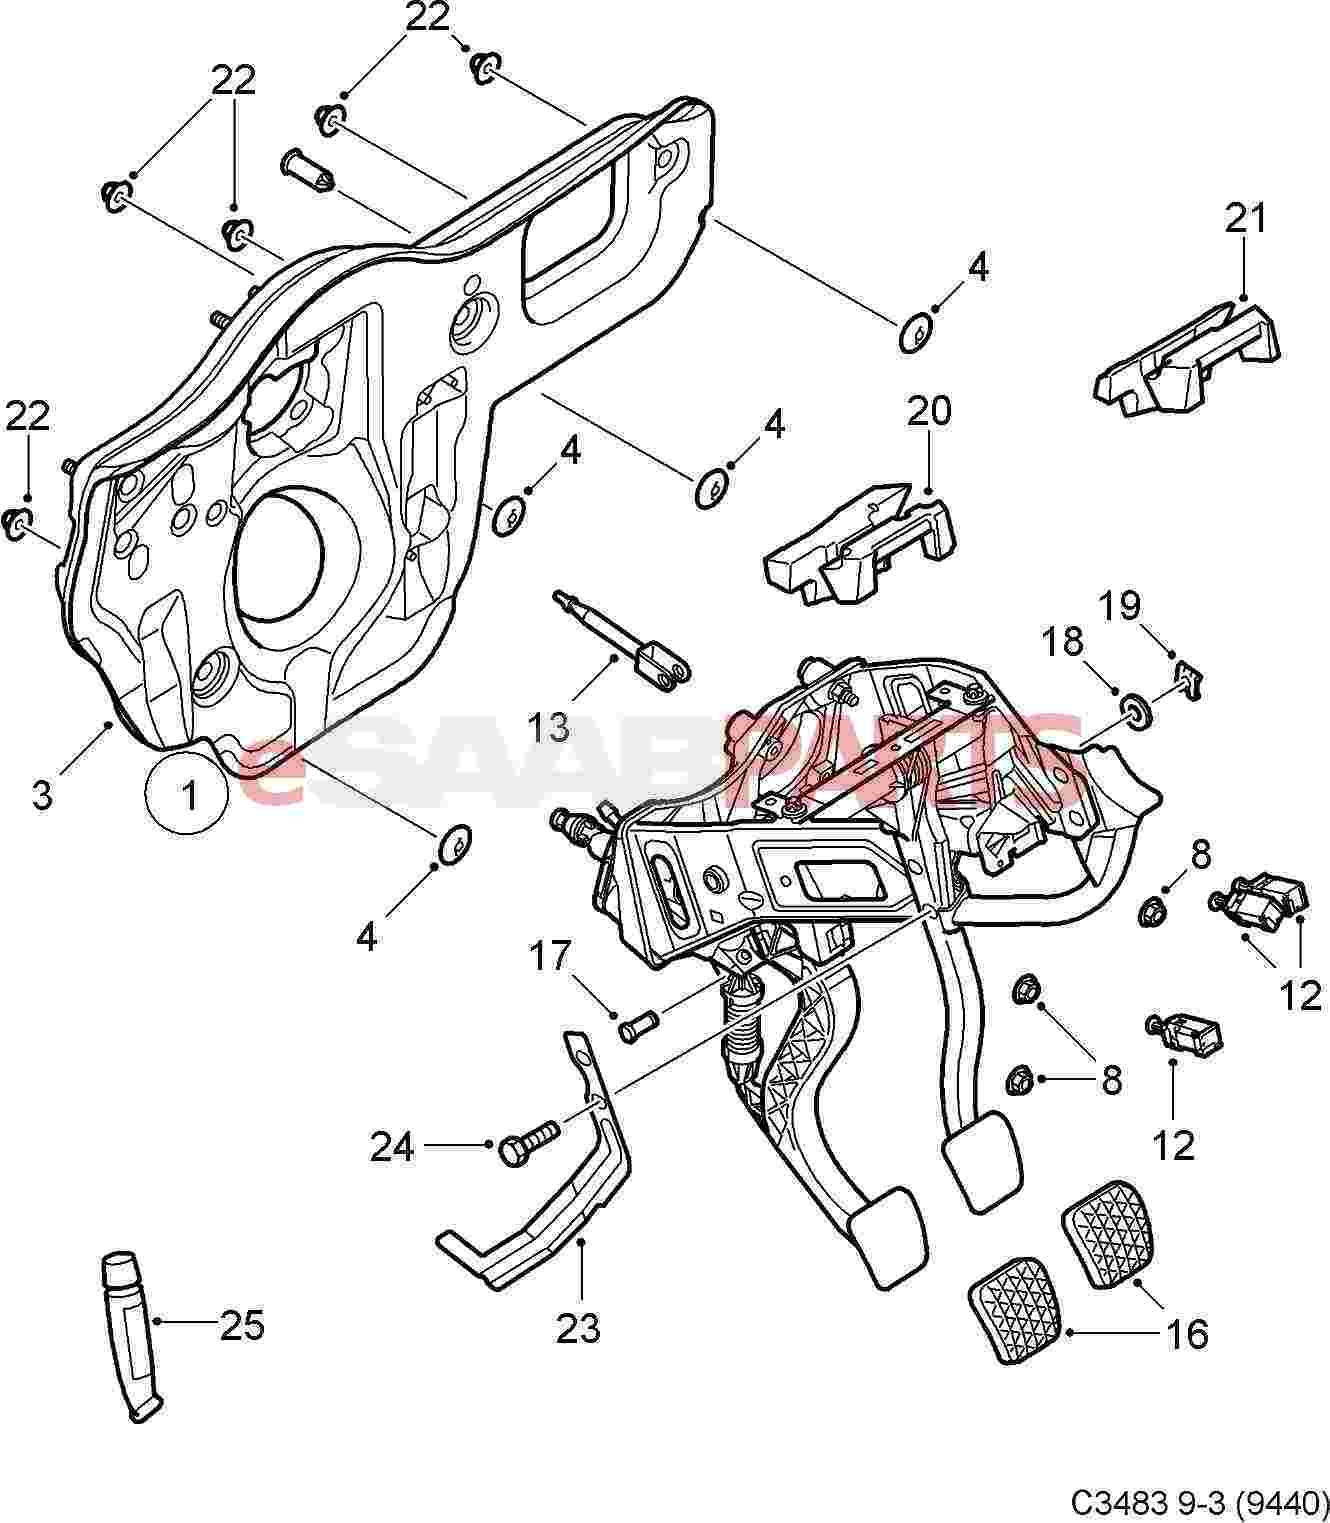 55701396  saab clutch pedal switch